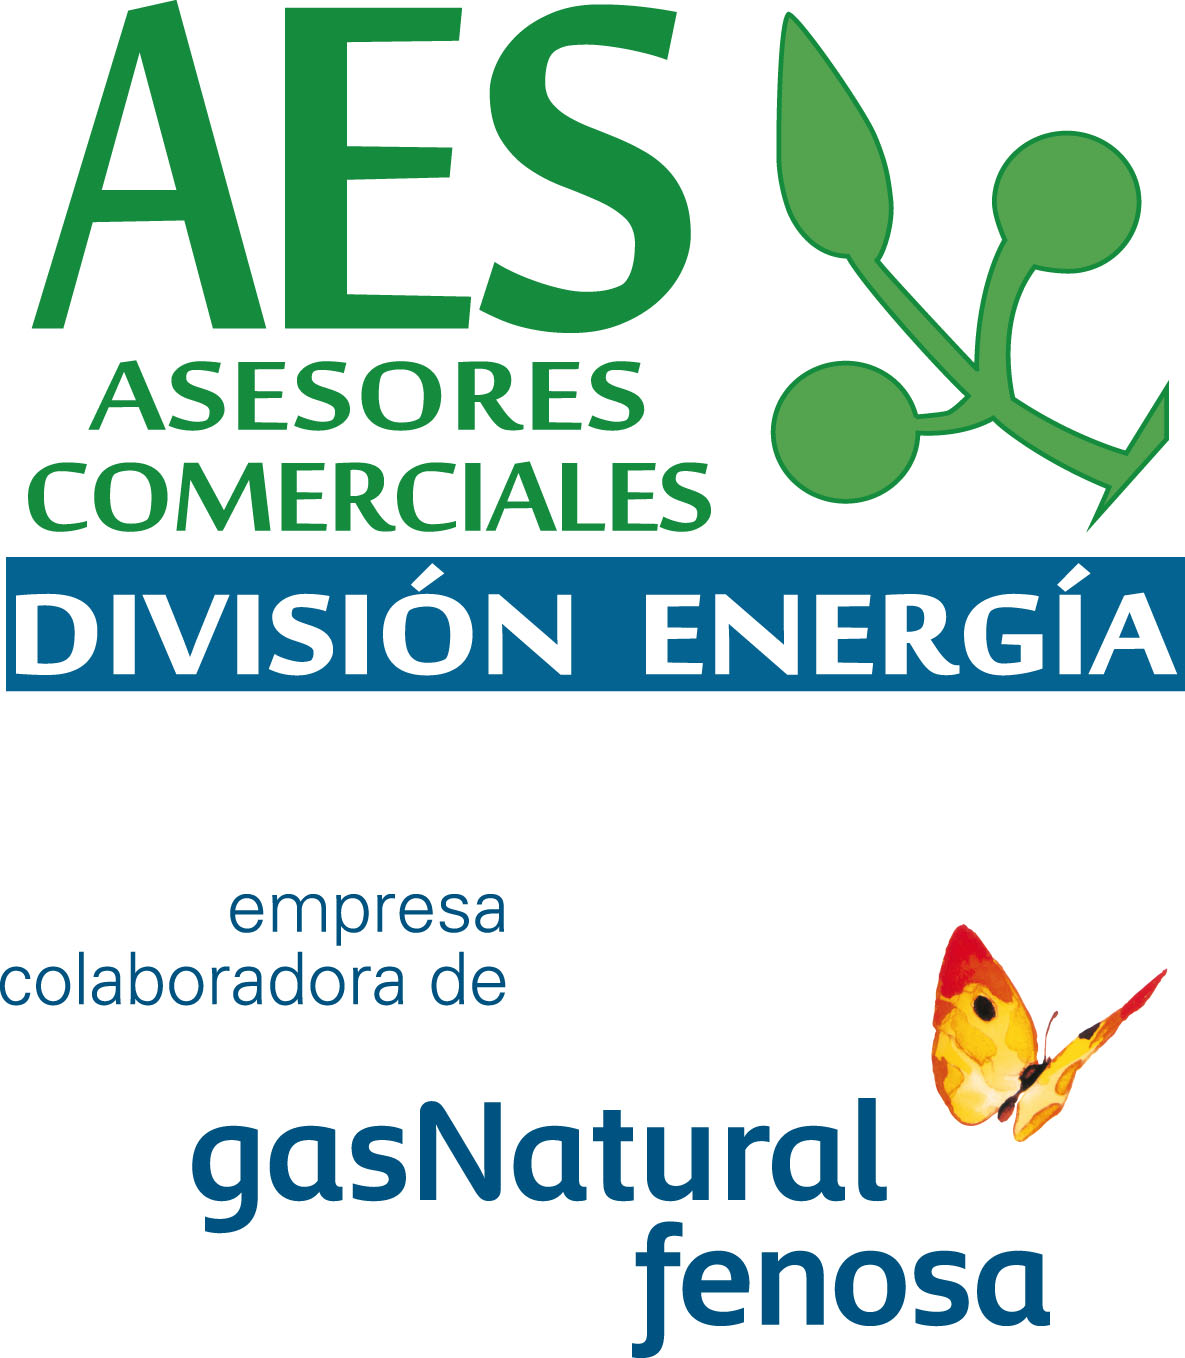 Aes Asesores